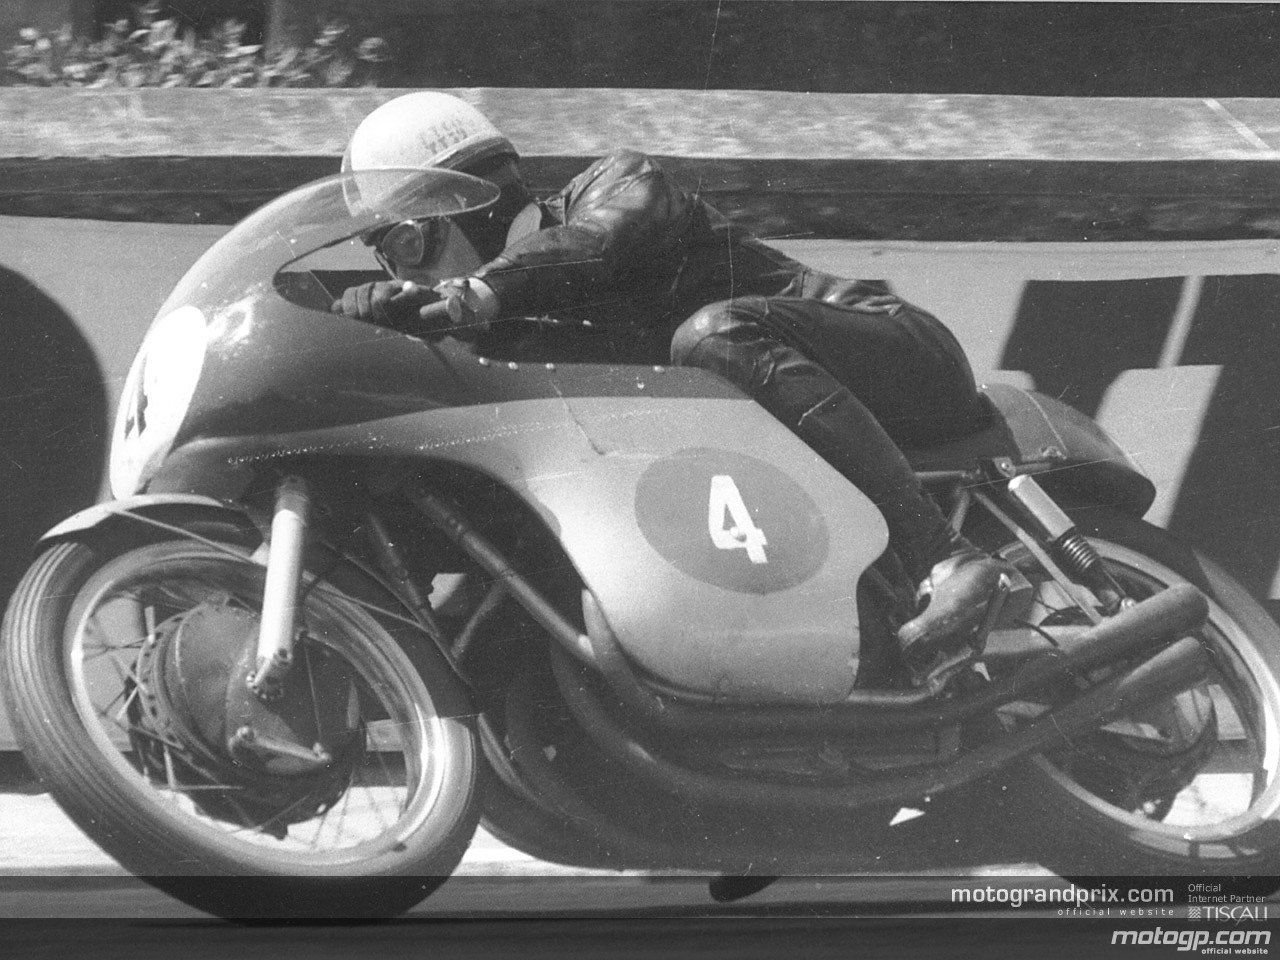 96015_john+surtees-1280x960-jul4.jpg._original